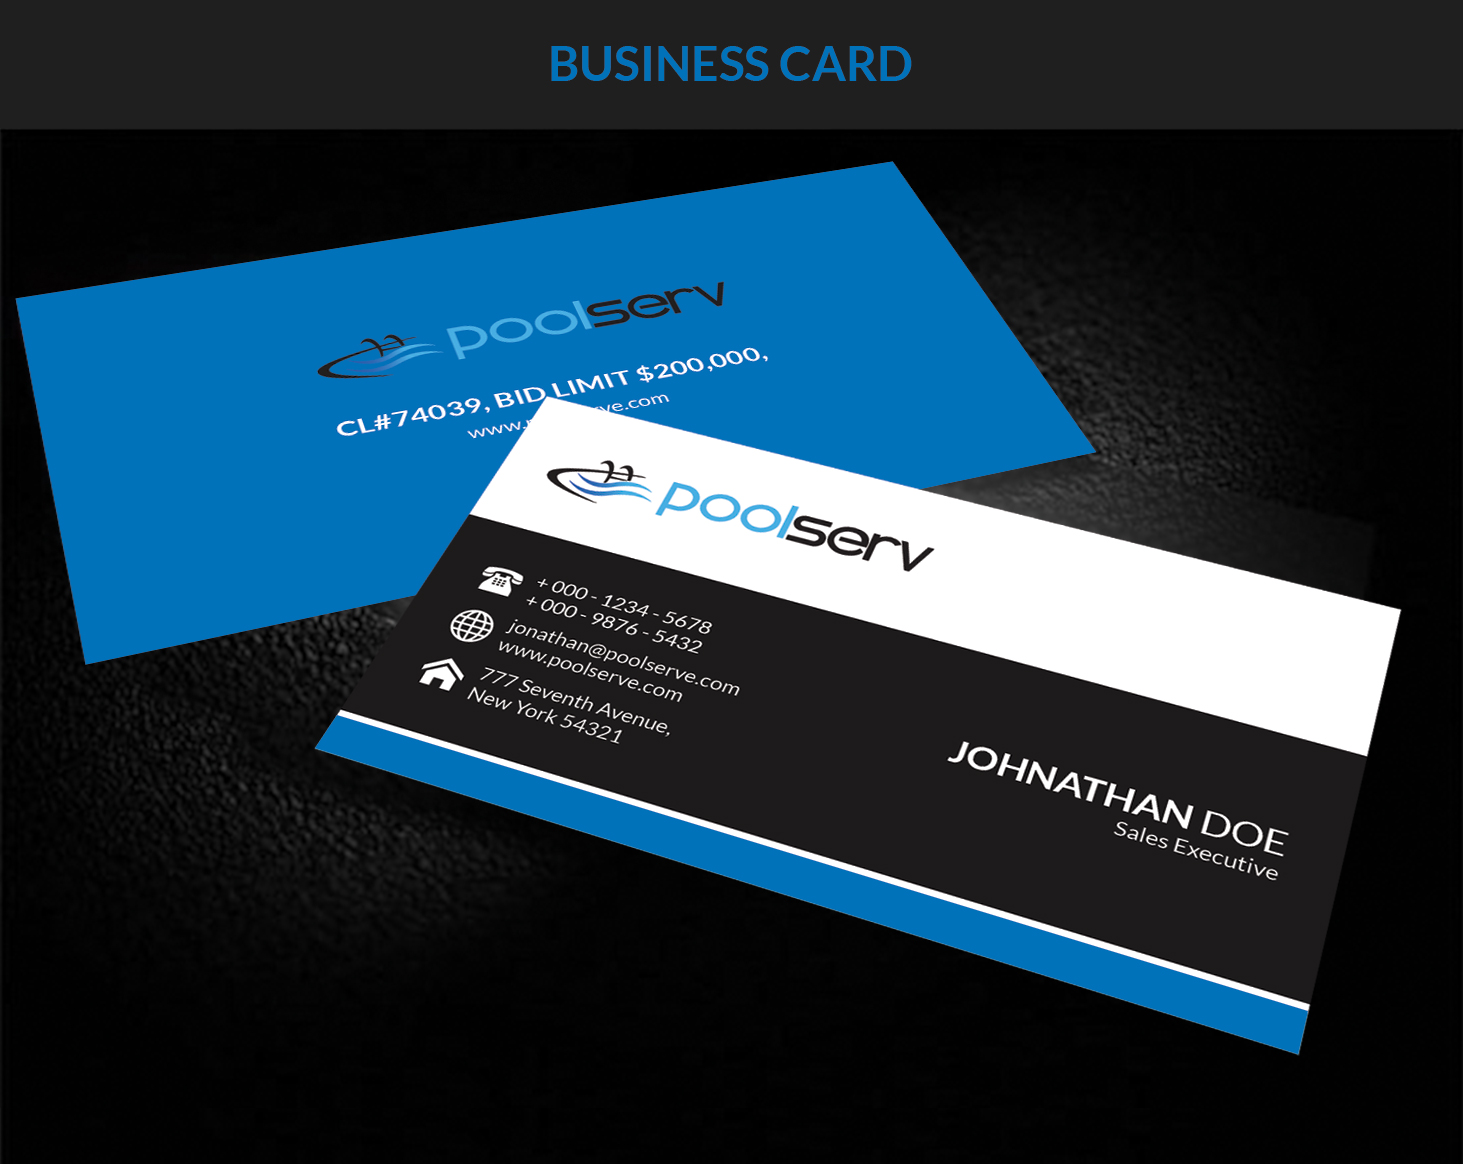 Swimming Pool Service Business Cards : Modern professional business card design for a